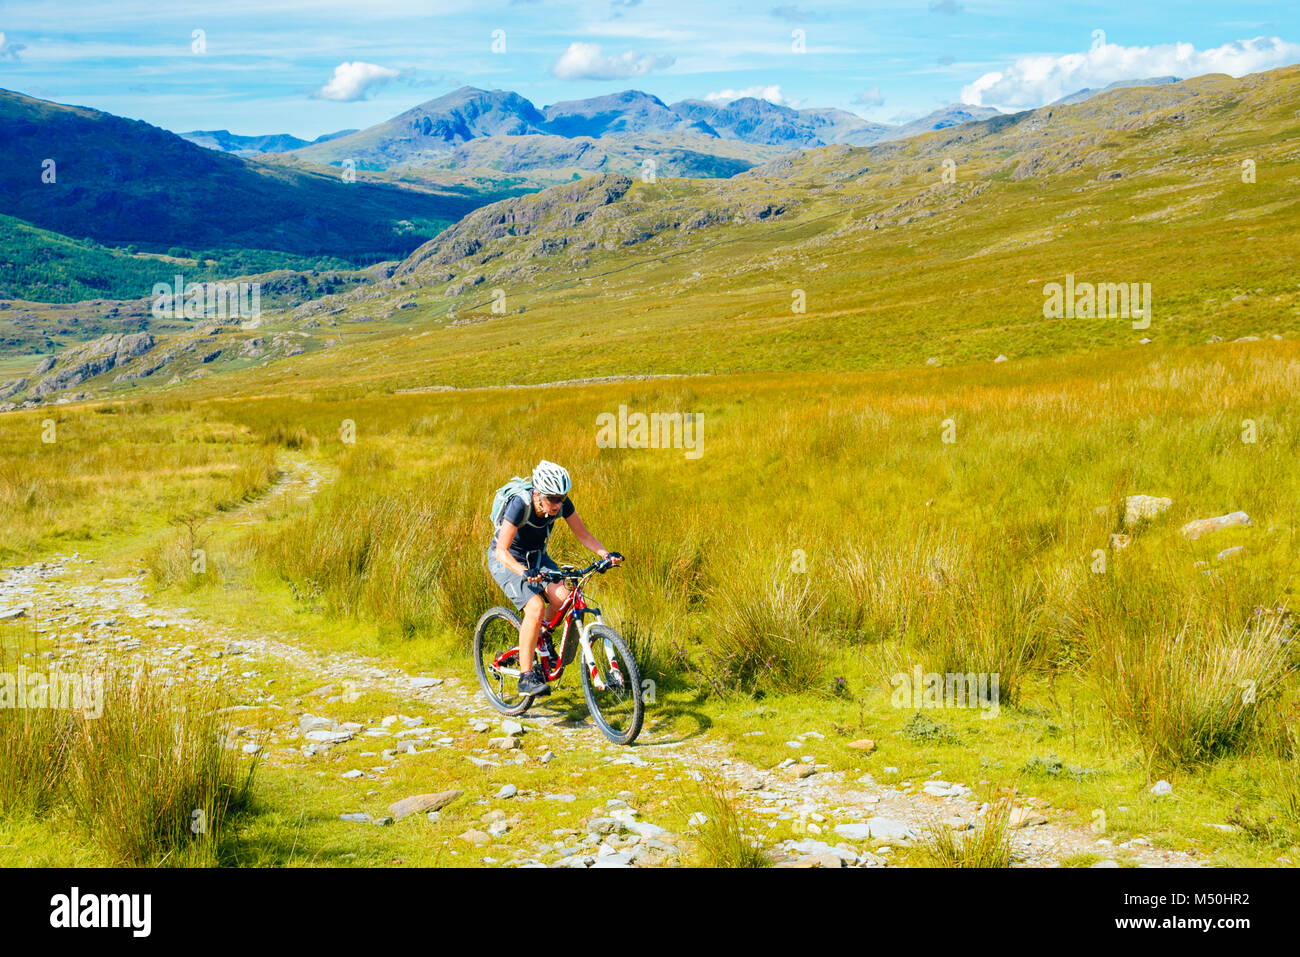 Female mountain biker climbing the Walna Scar Road above the Duddon Valley in the English Lake District - Stock Image